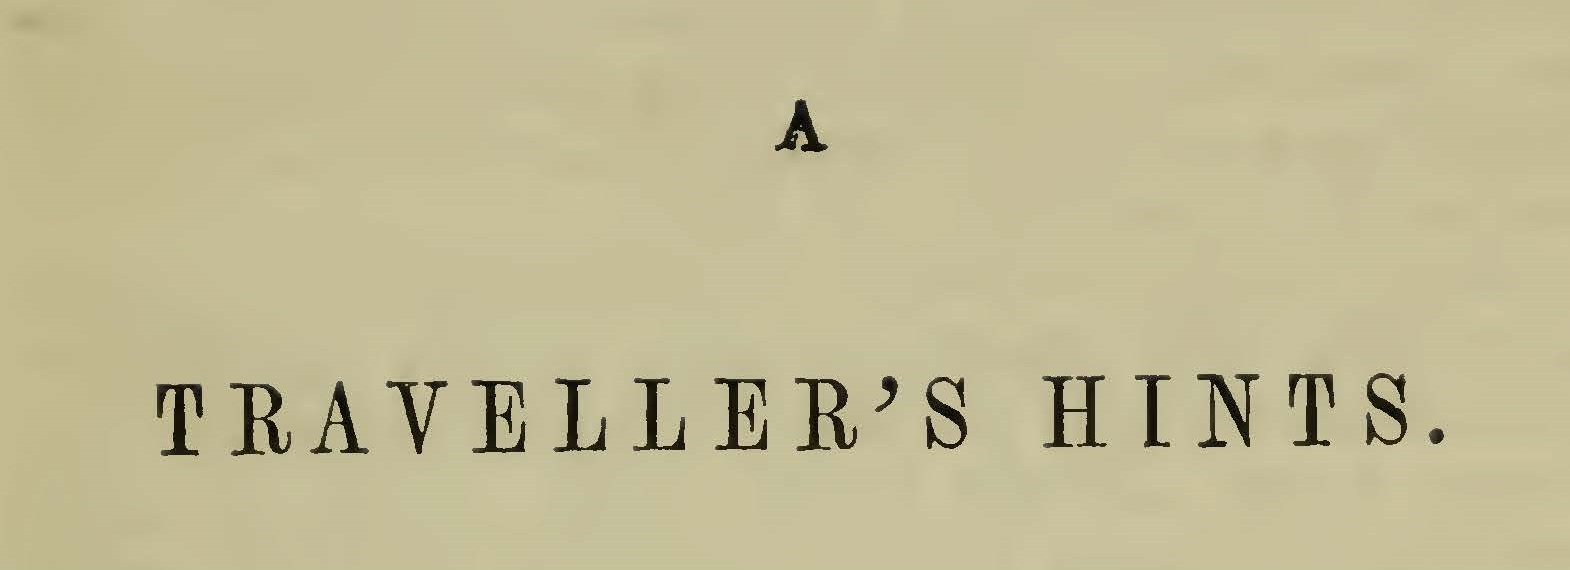 Engles, William Morrison, A Traveller's Hints Title Page.jpg